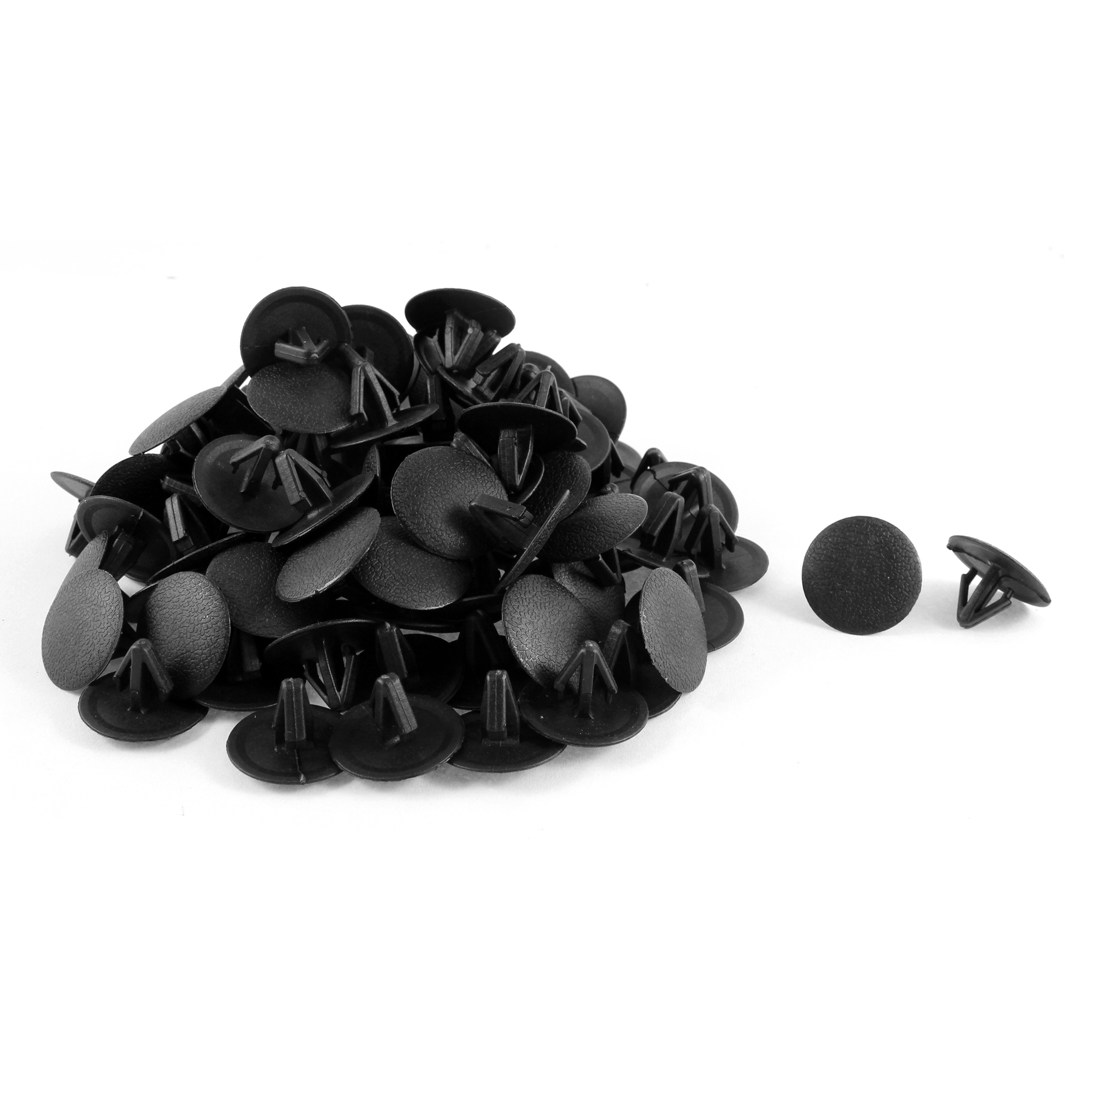 100 Pcs Black Plastic Splash Guard Moulding Bumper Clips 12mm x 14mm x 25mm